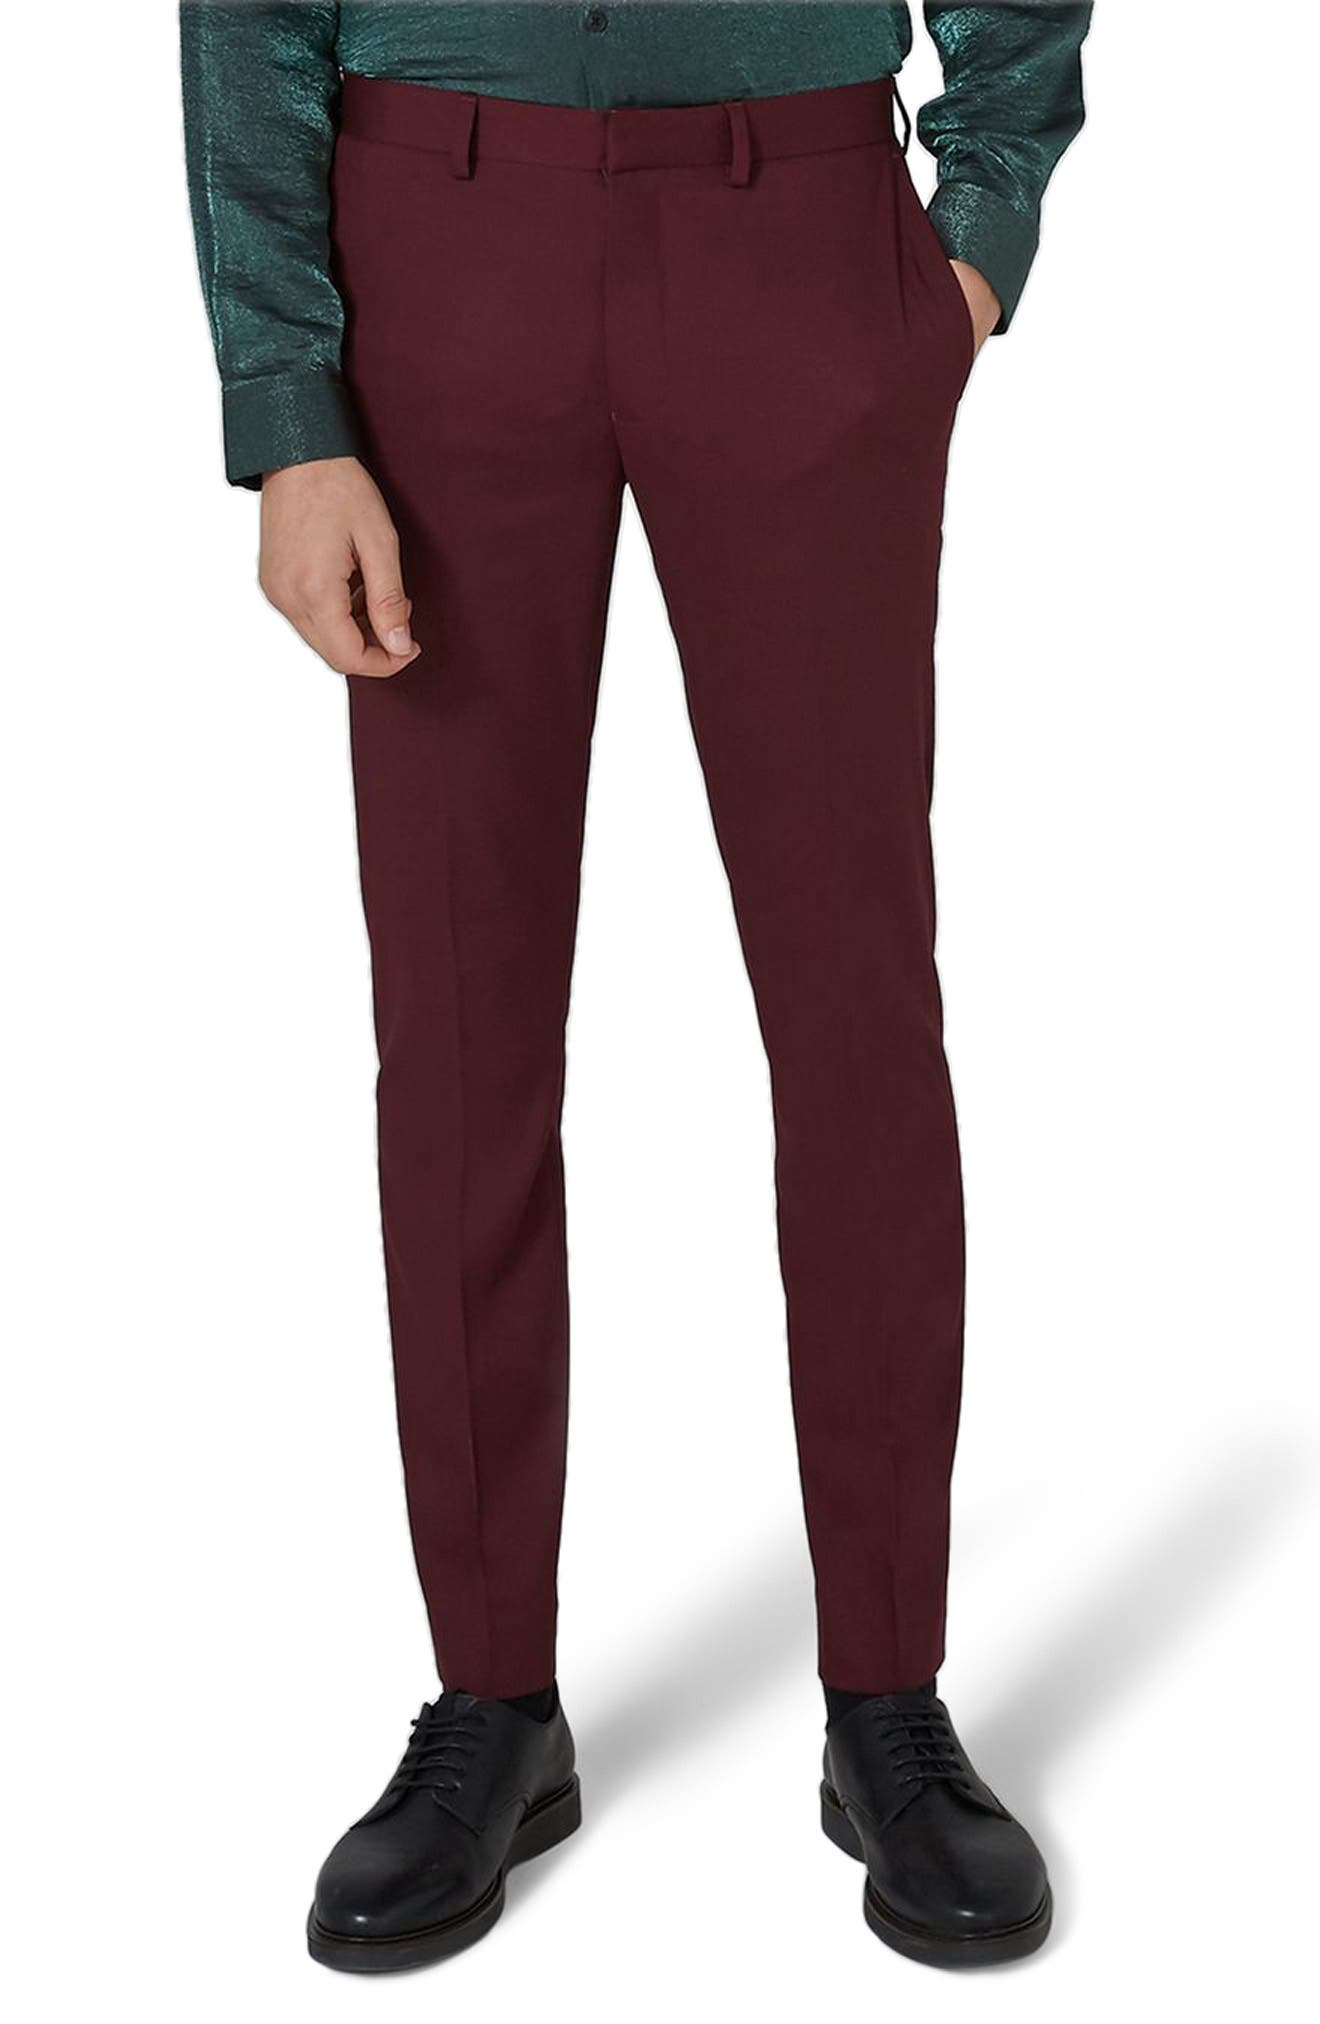 Skinny Fit Burgundy Tuxedo Trousers,                             Main thumbnail 1, color,                             930